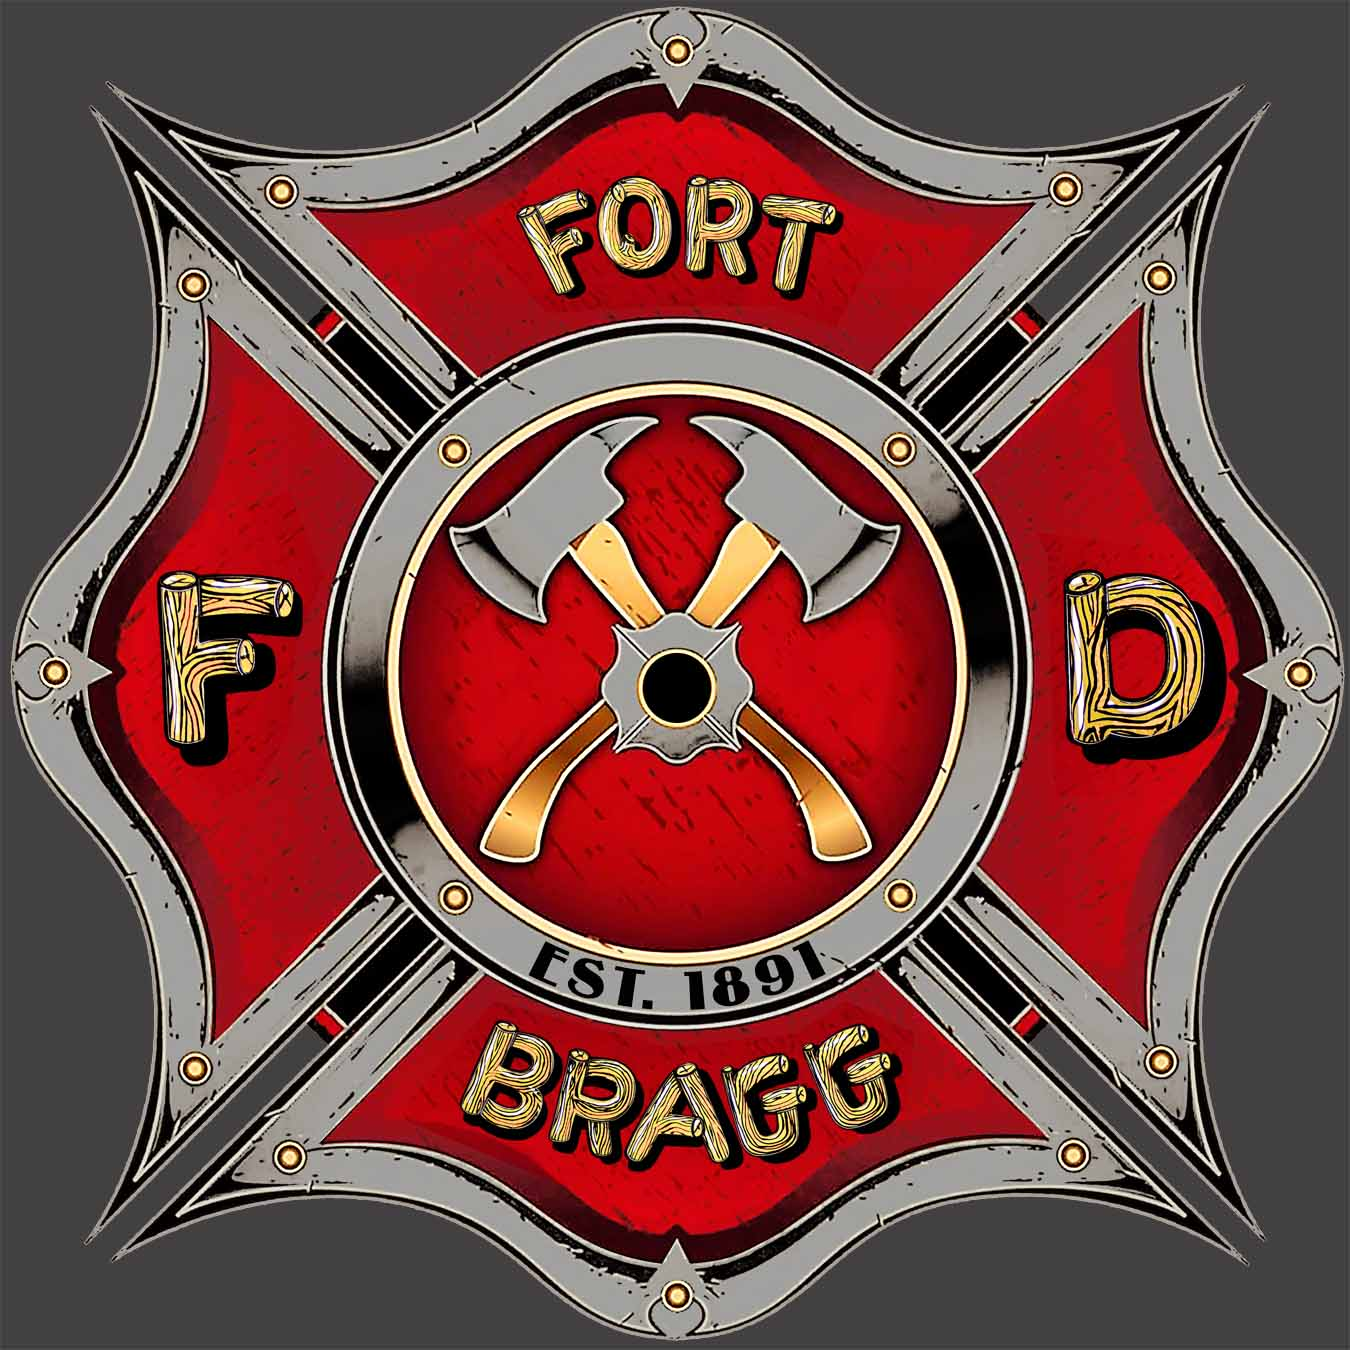 Fort Bragg Fire Department